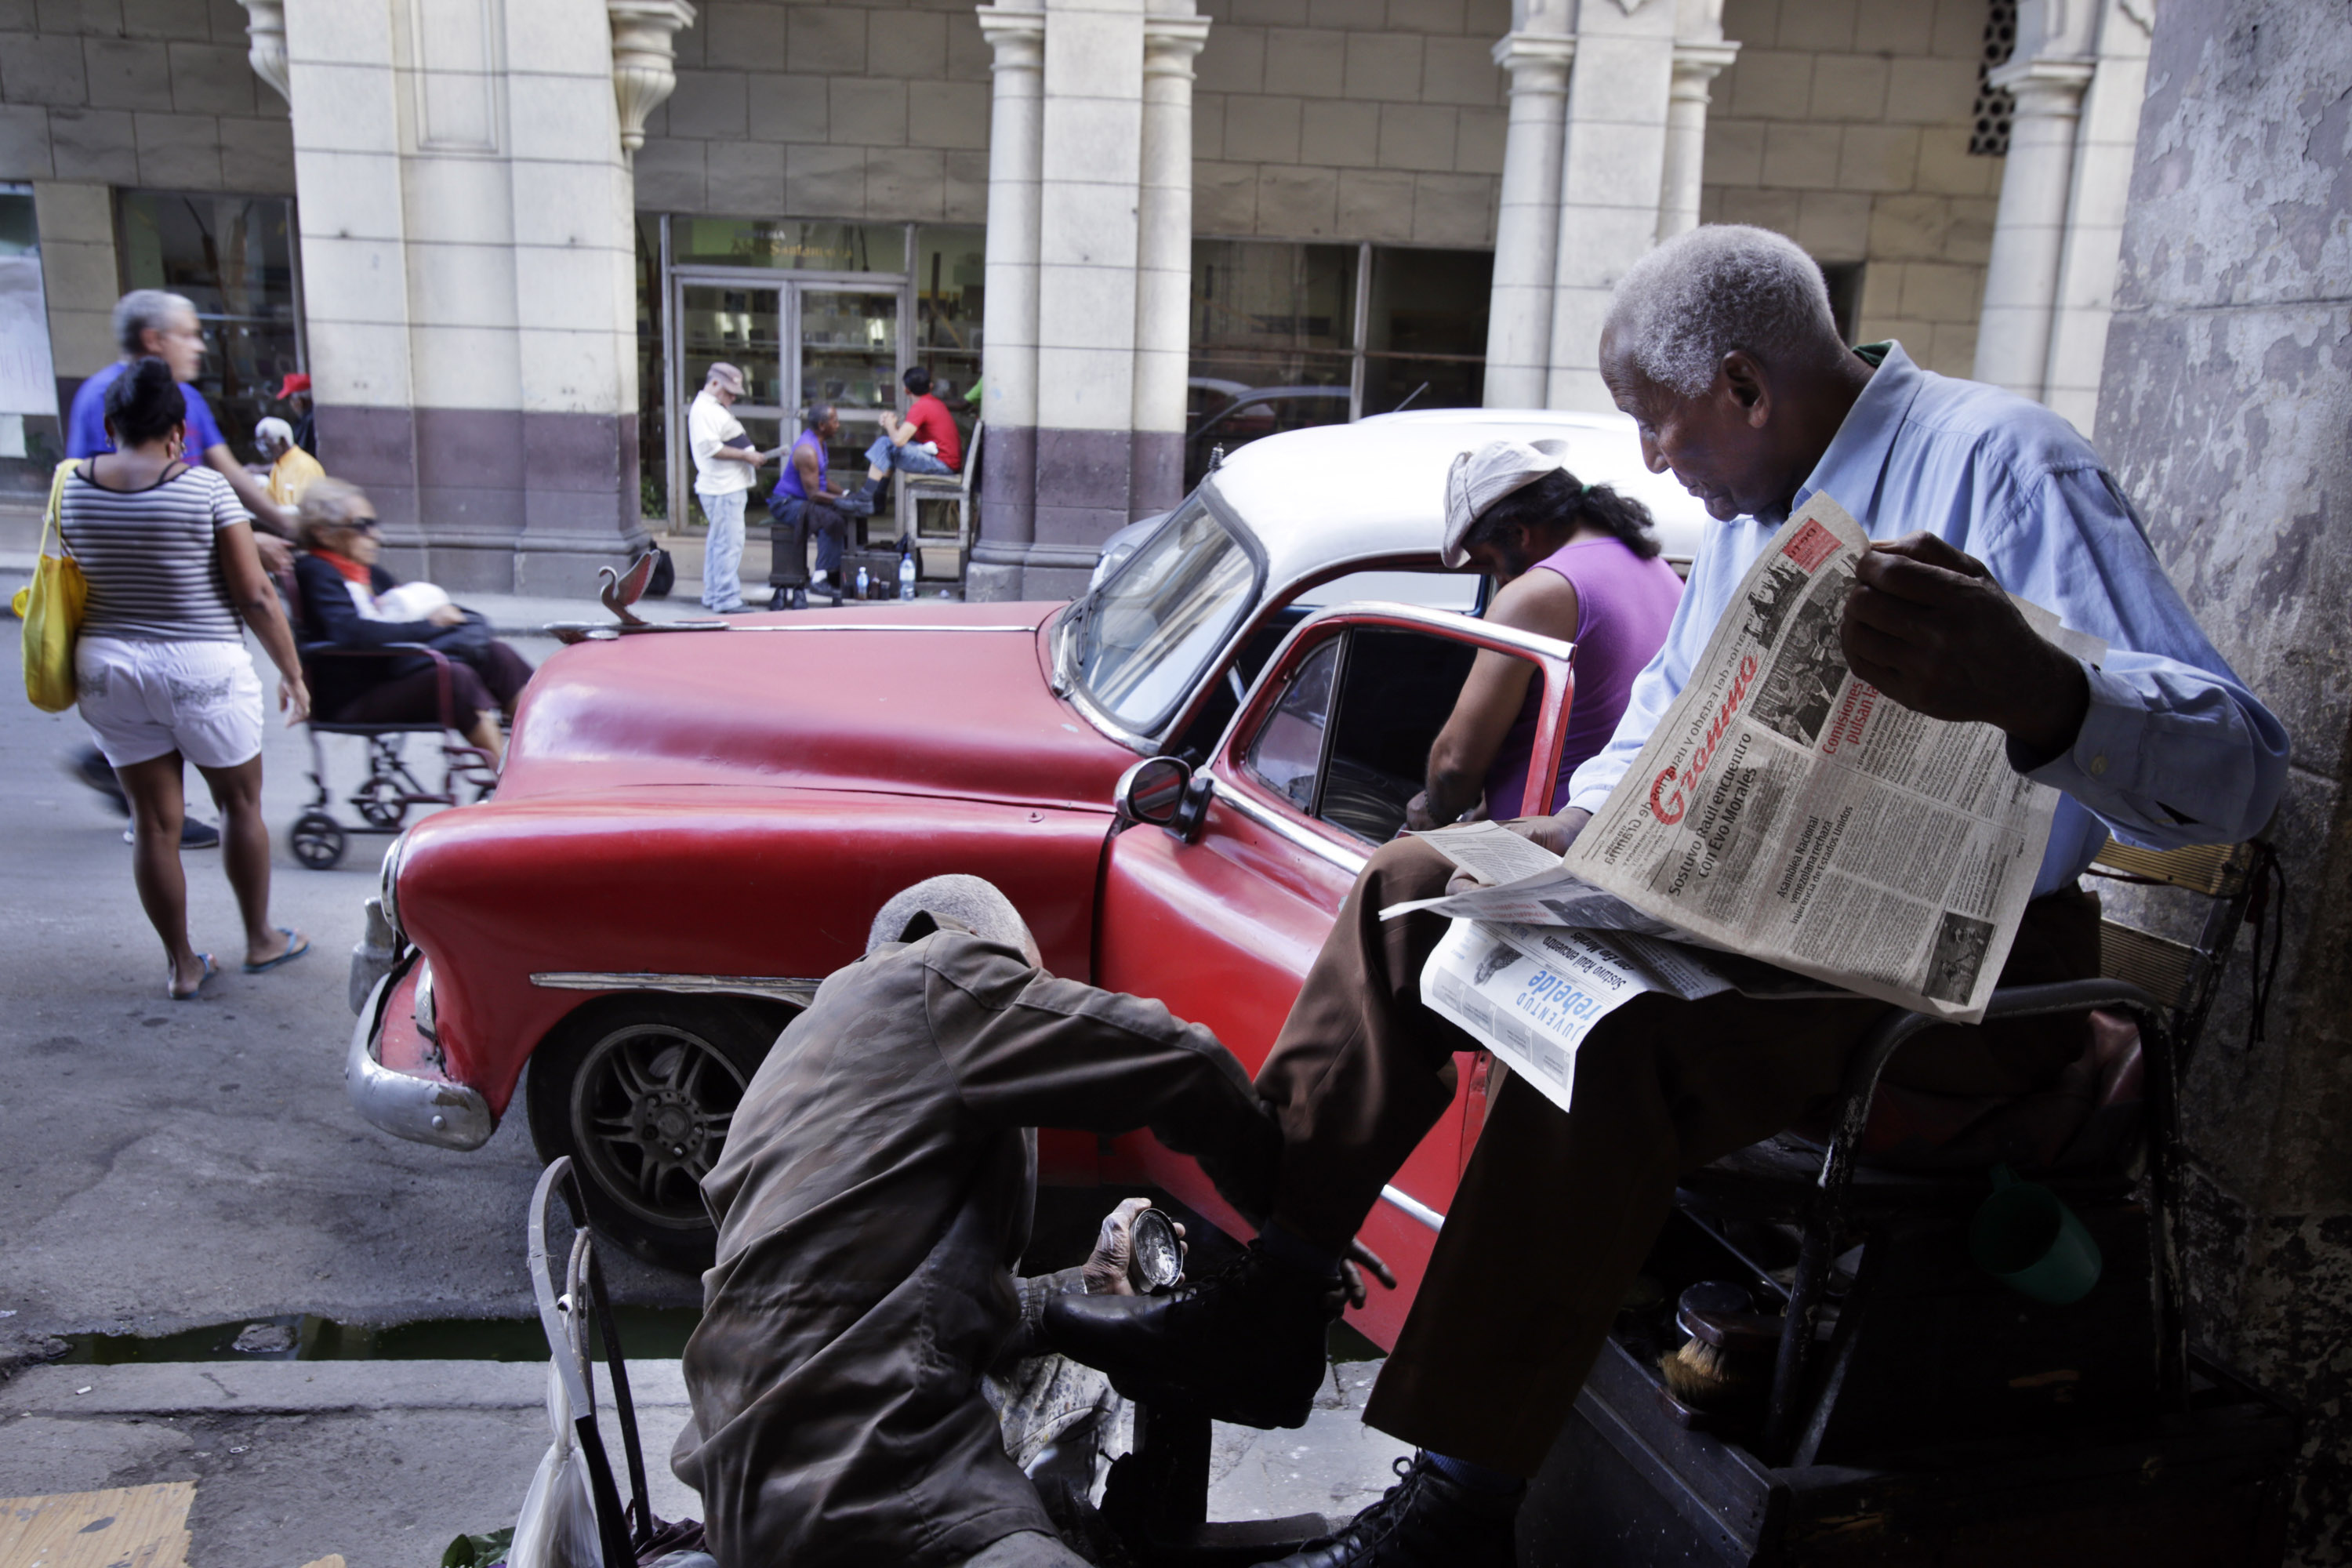 A Cuban man reads the Granma, a Cuban communist party paper, as he has his shoes shined, shortly after a live broadcast a speech by Cuban President Raul Castro about the re-establishment of  official diplomatic relations with the U.S., on December 17, 2014, in Havana, Cuba.